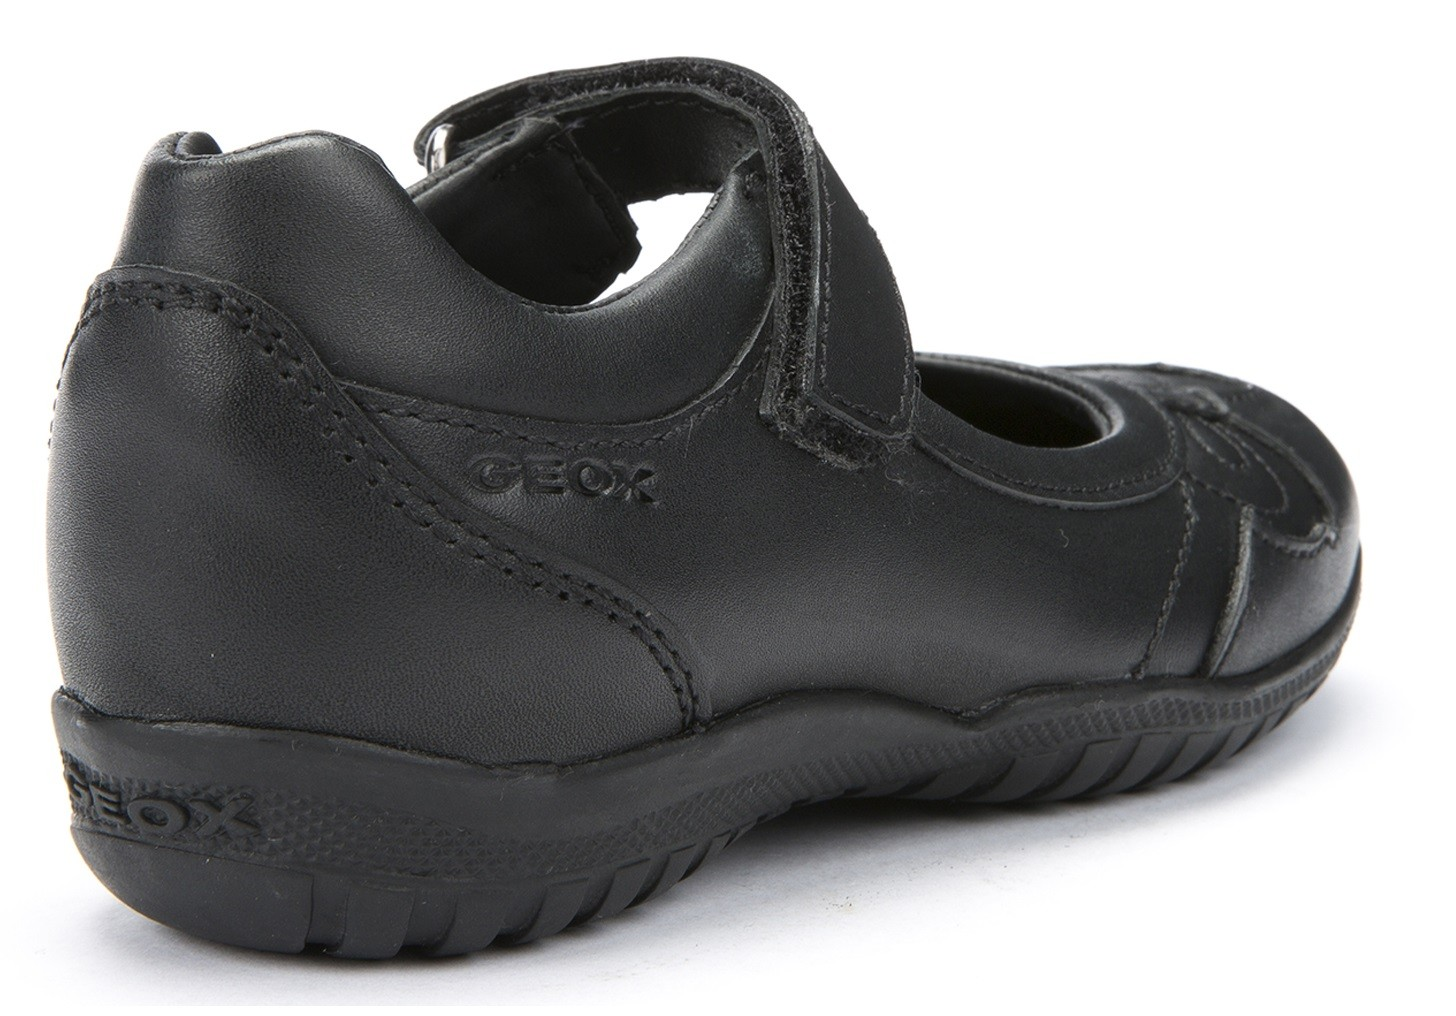 Geox Shoes Review